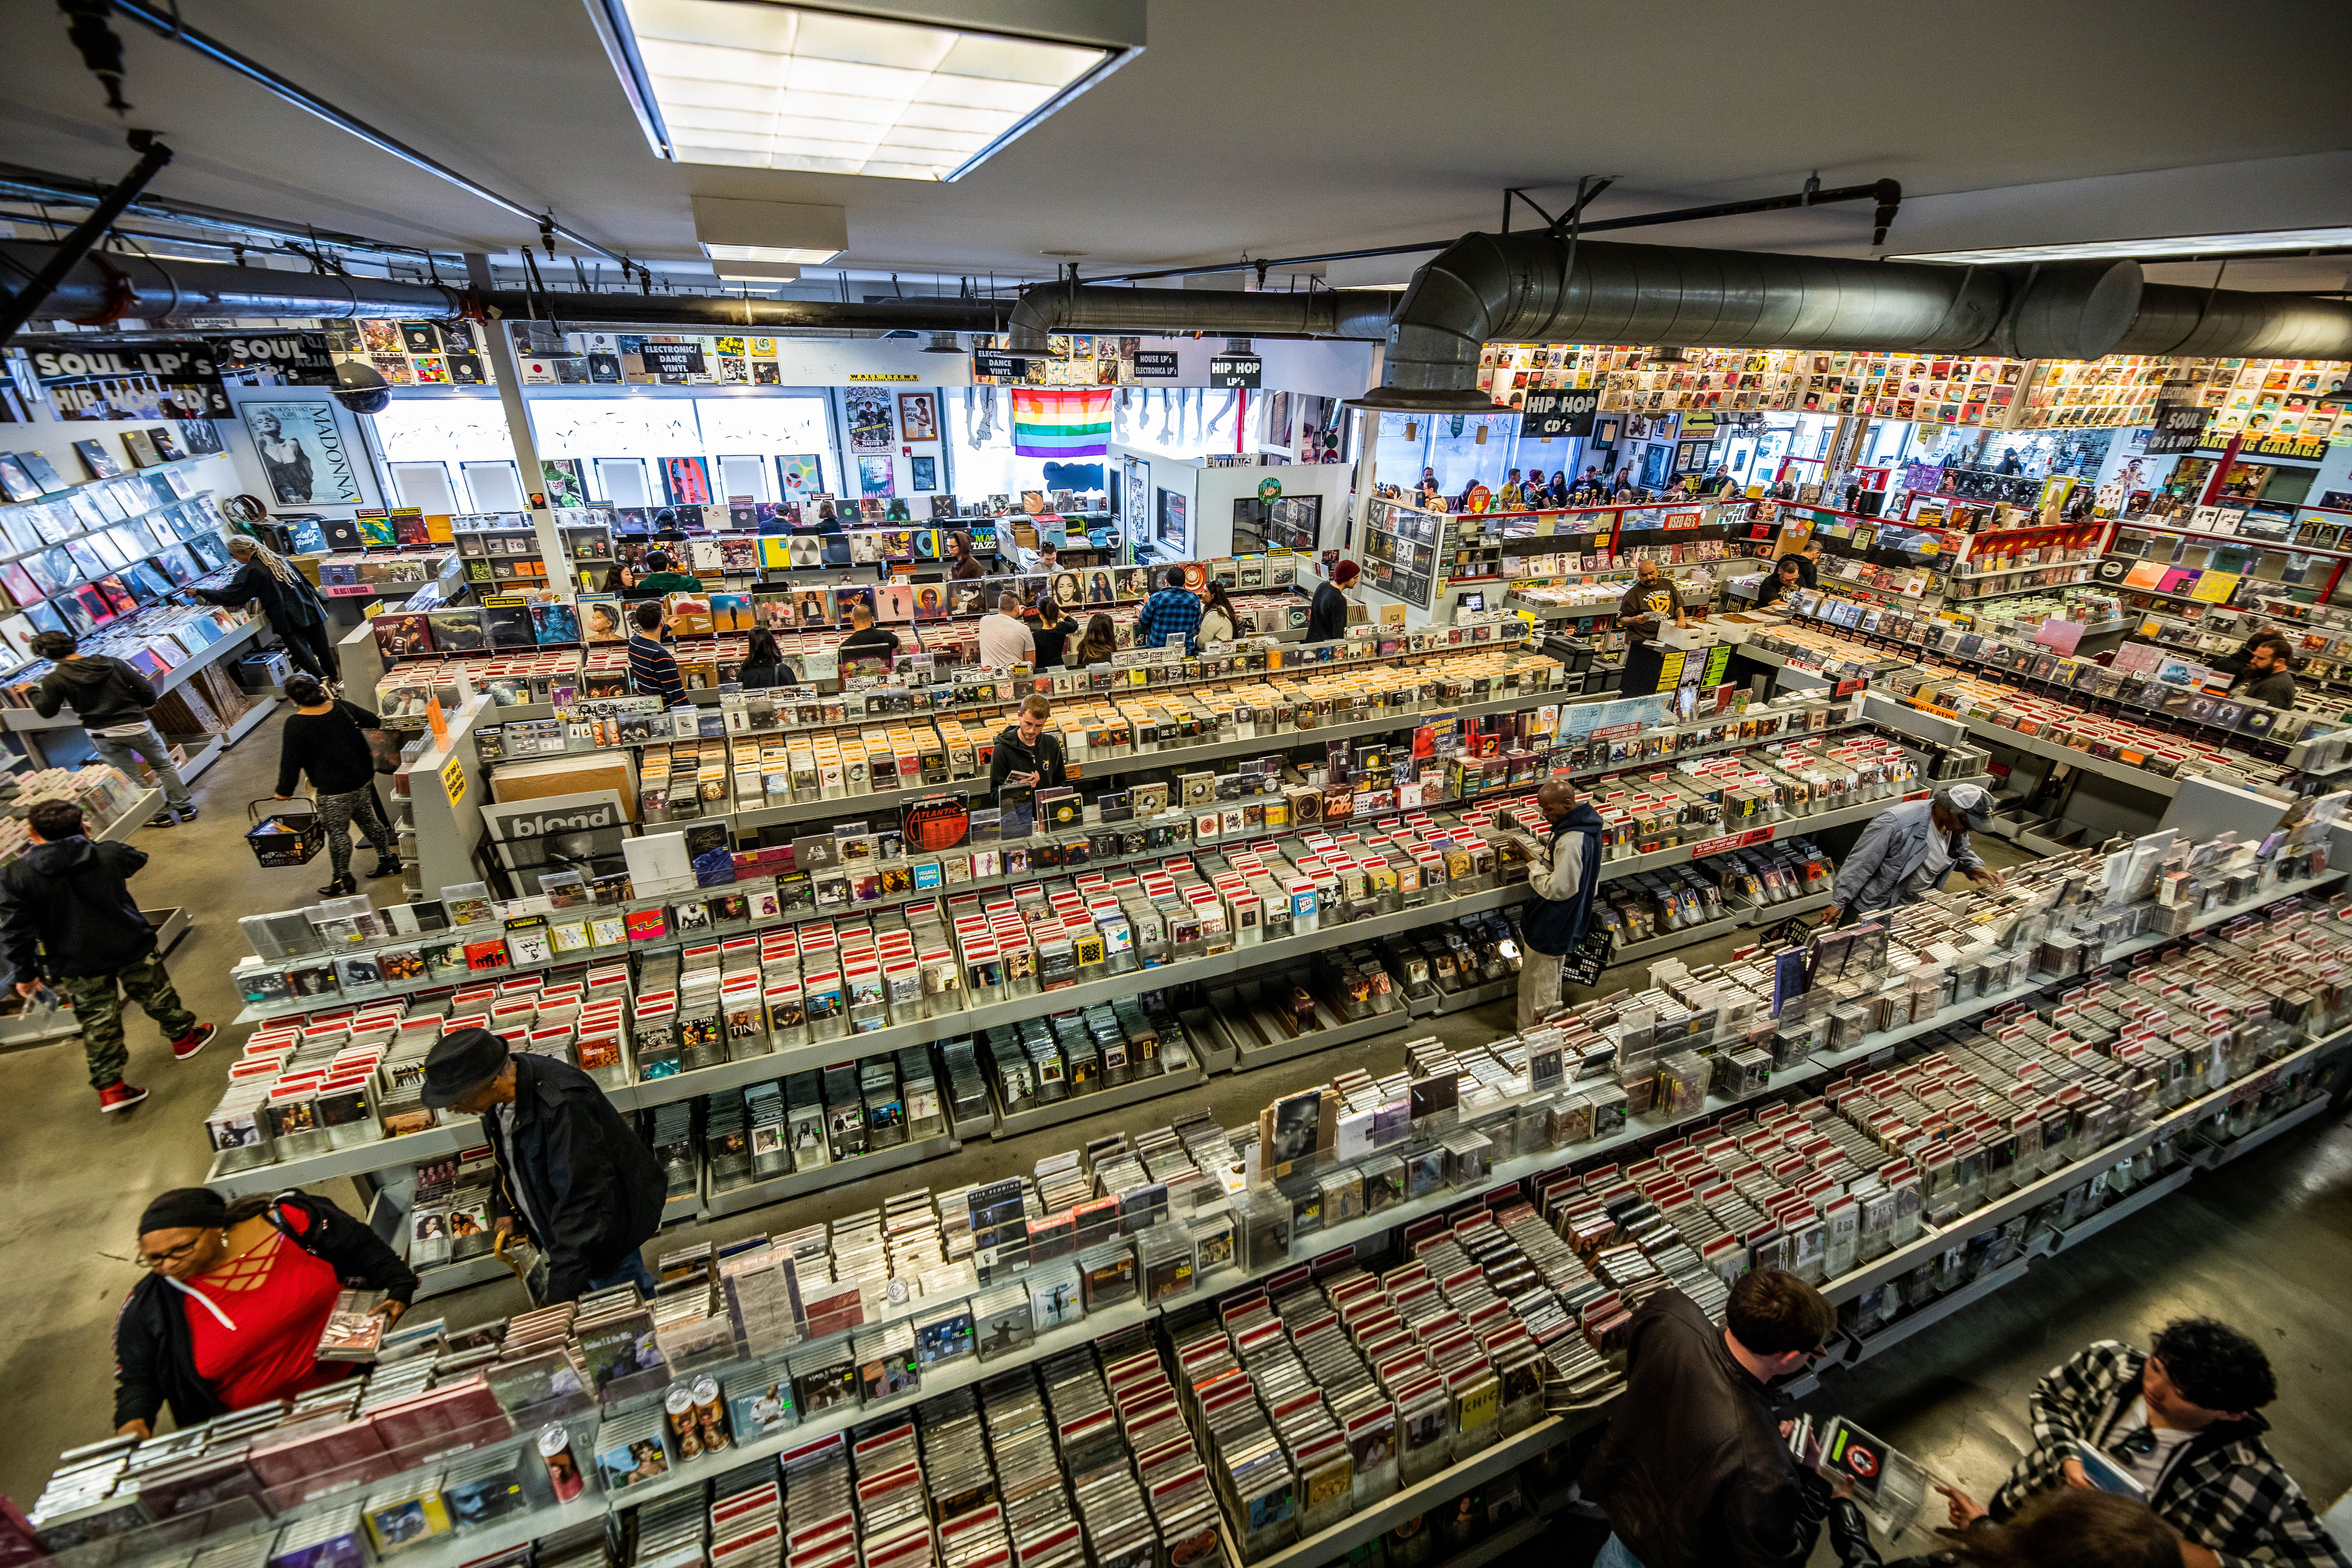 Rows of records being sold in Amoeba Music